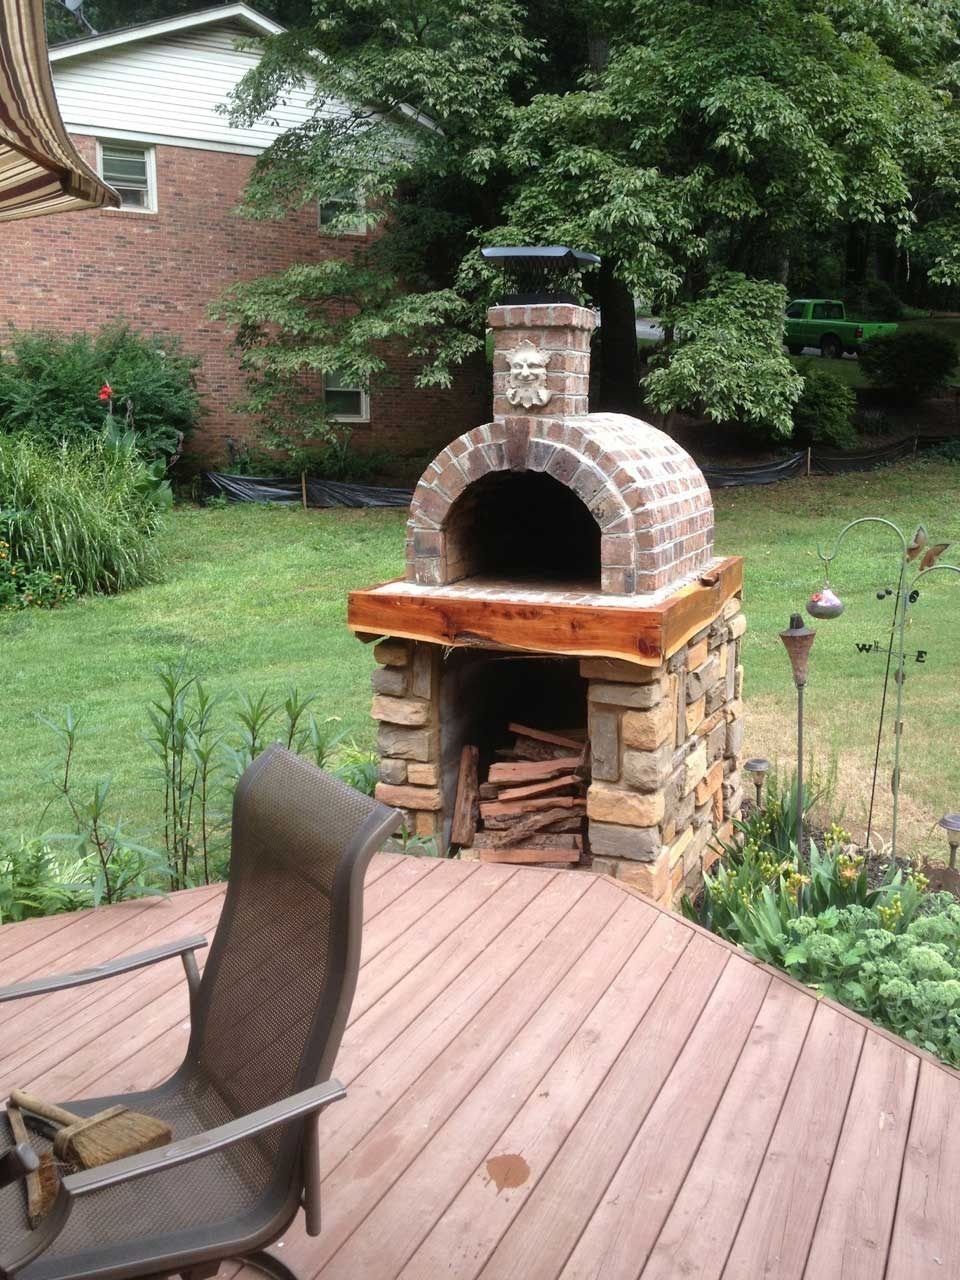 The Shiley Family Wood Fired Brick Pizza Oven In South Carolina Built With Mattone Barile Diy Form By Brickwood Ovens